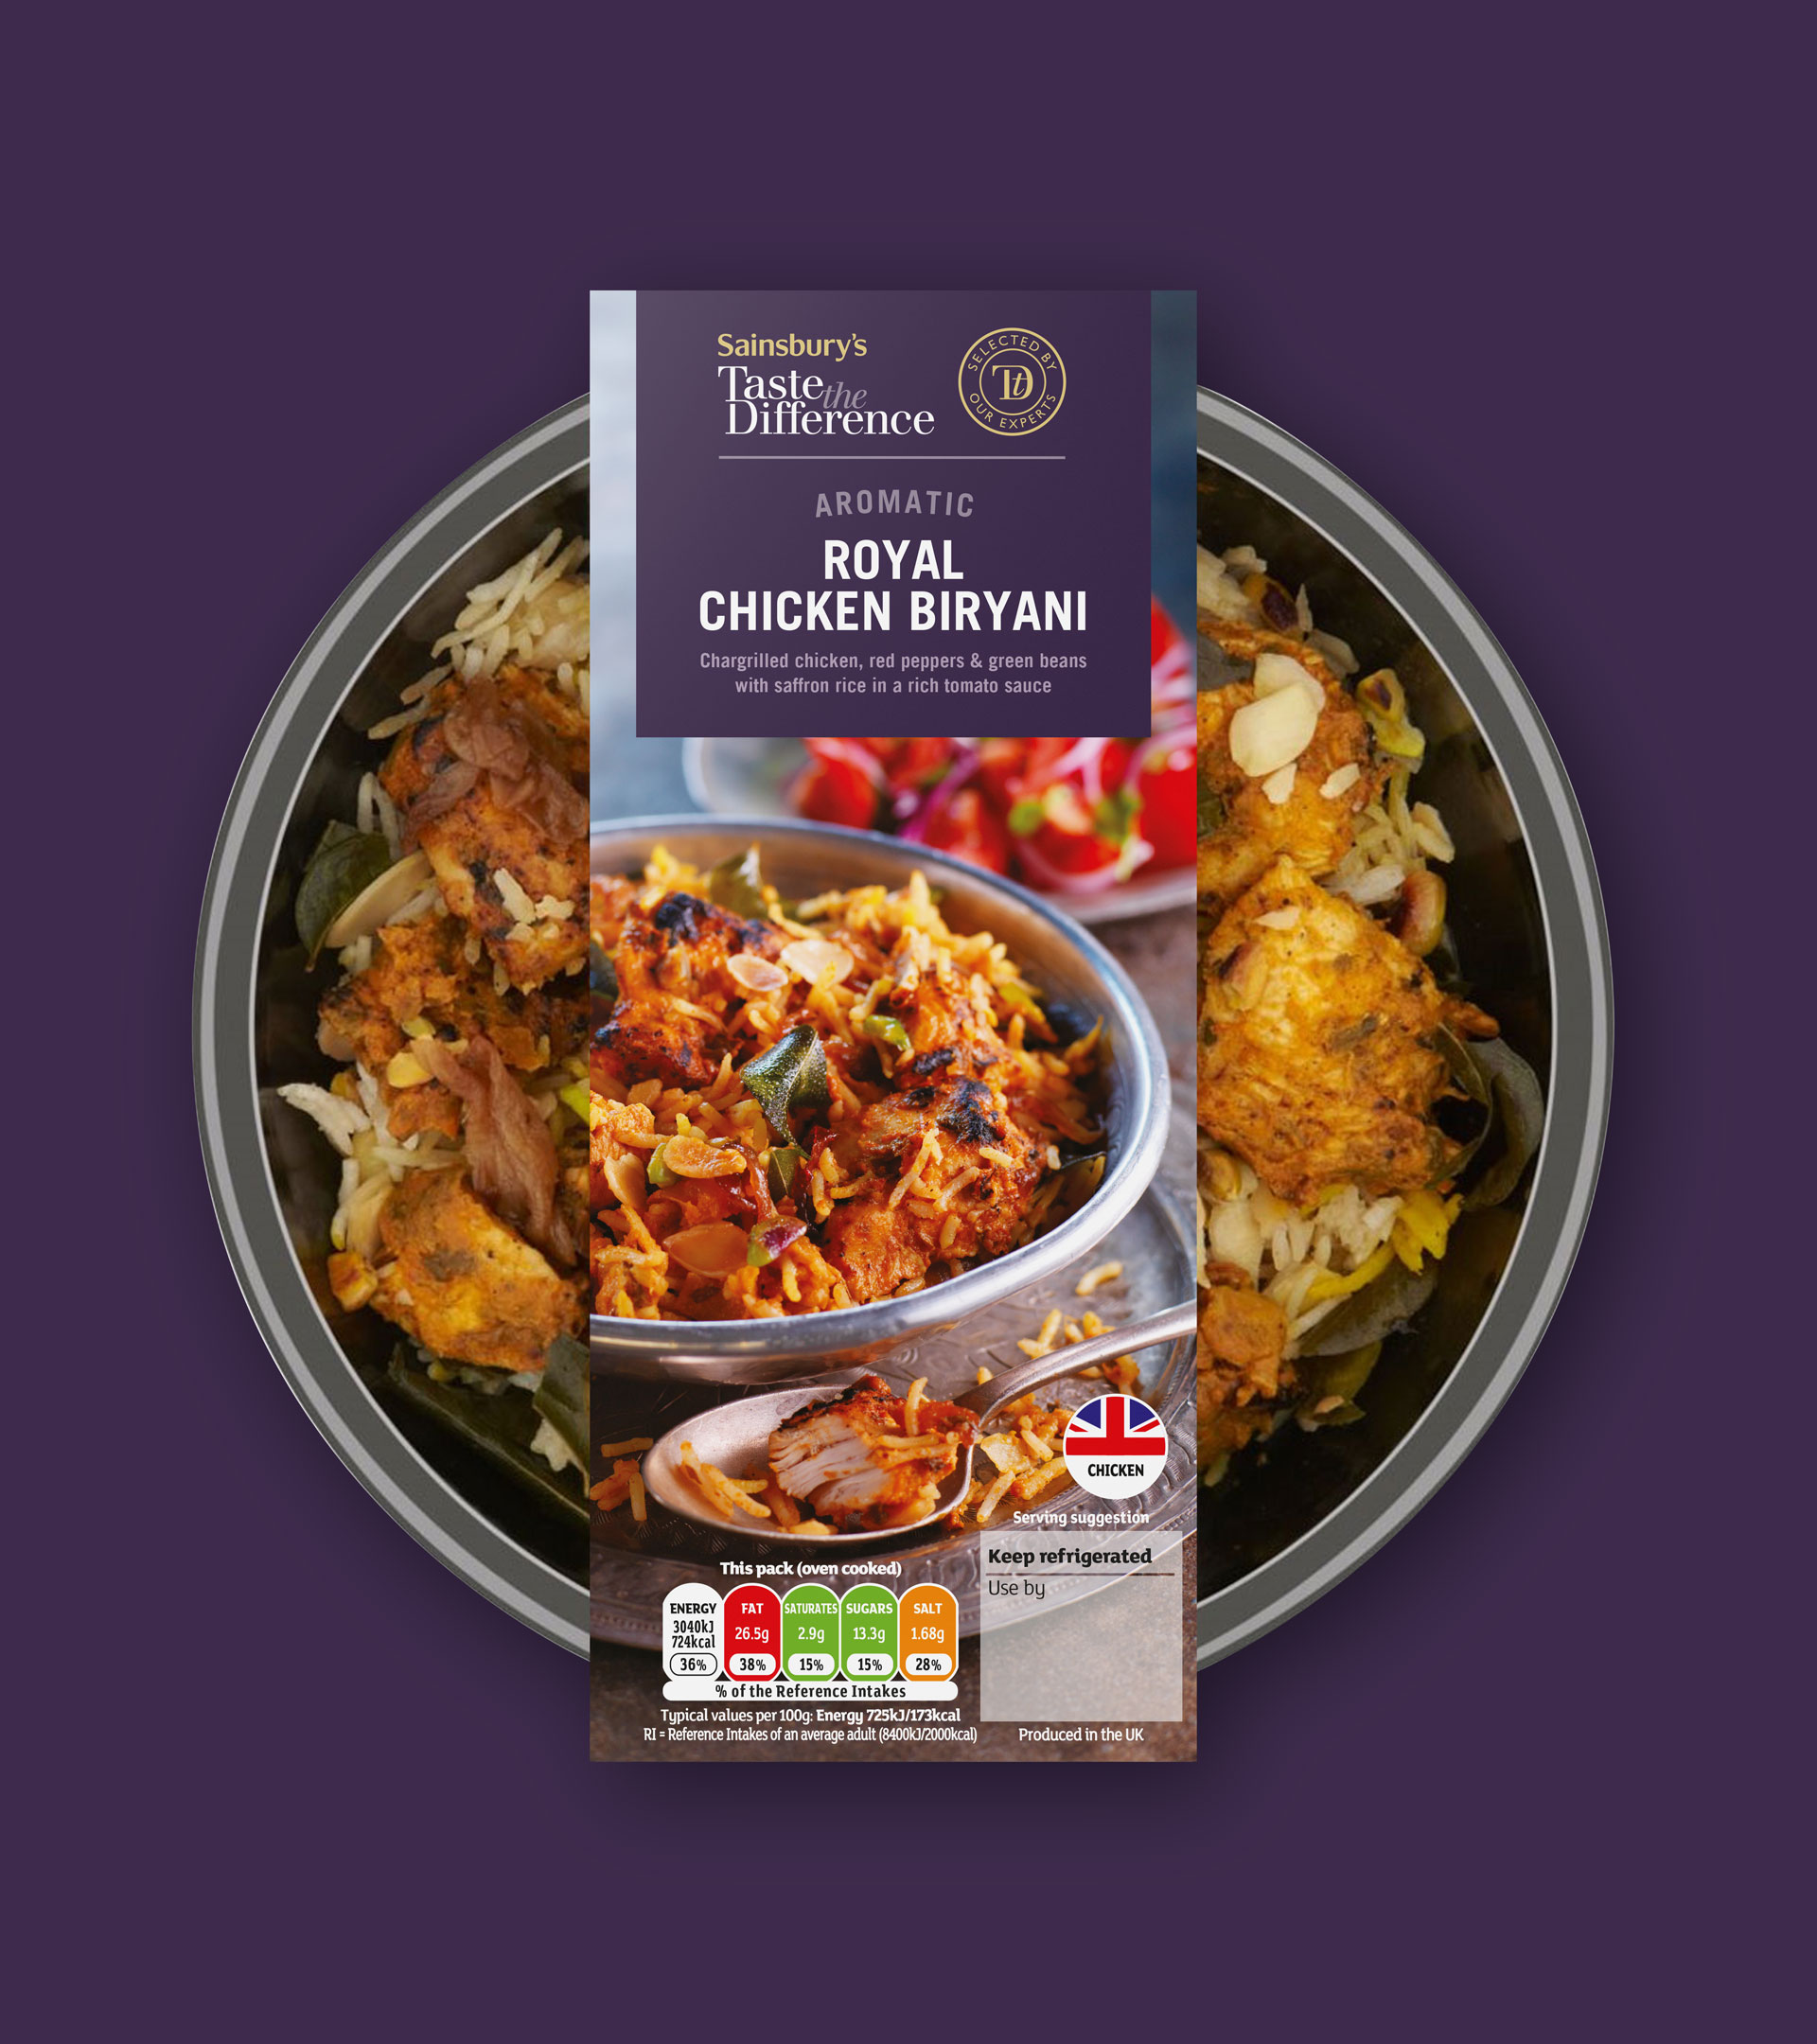 Sainsbury's Taste the Difference ready meal packaging